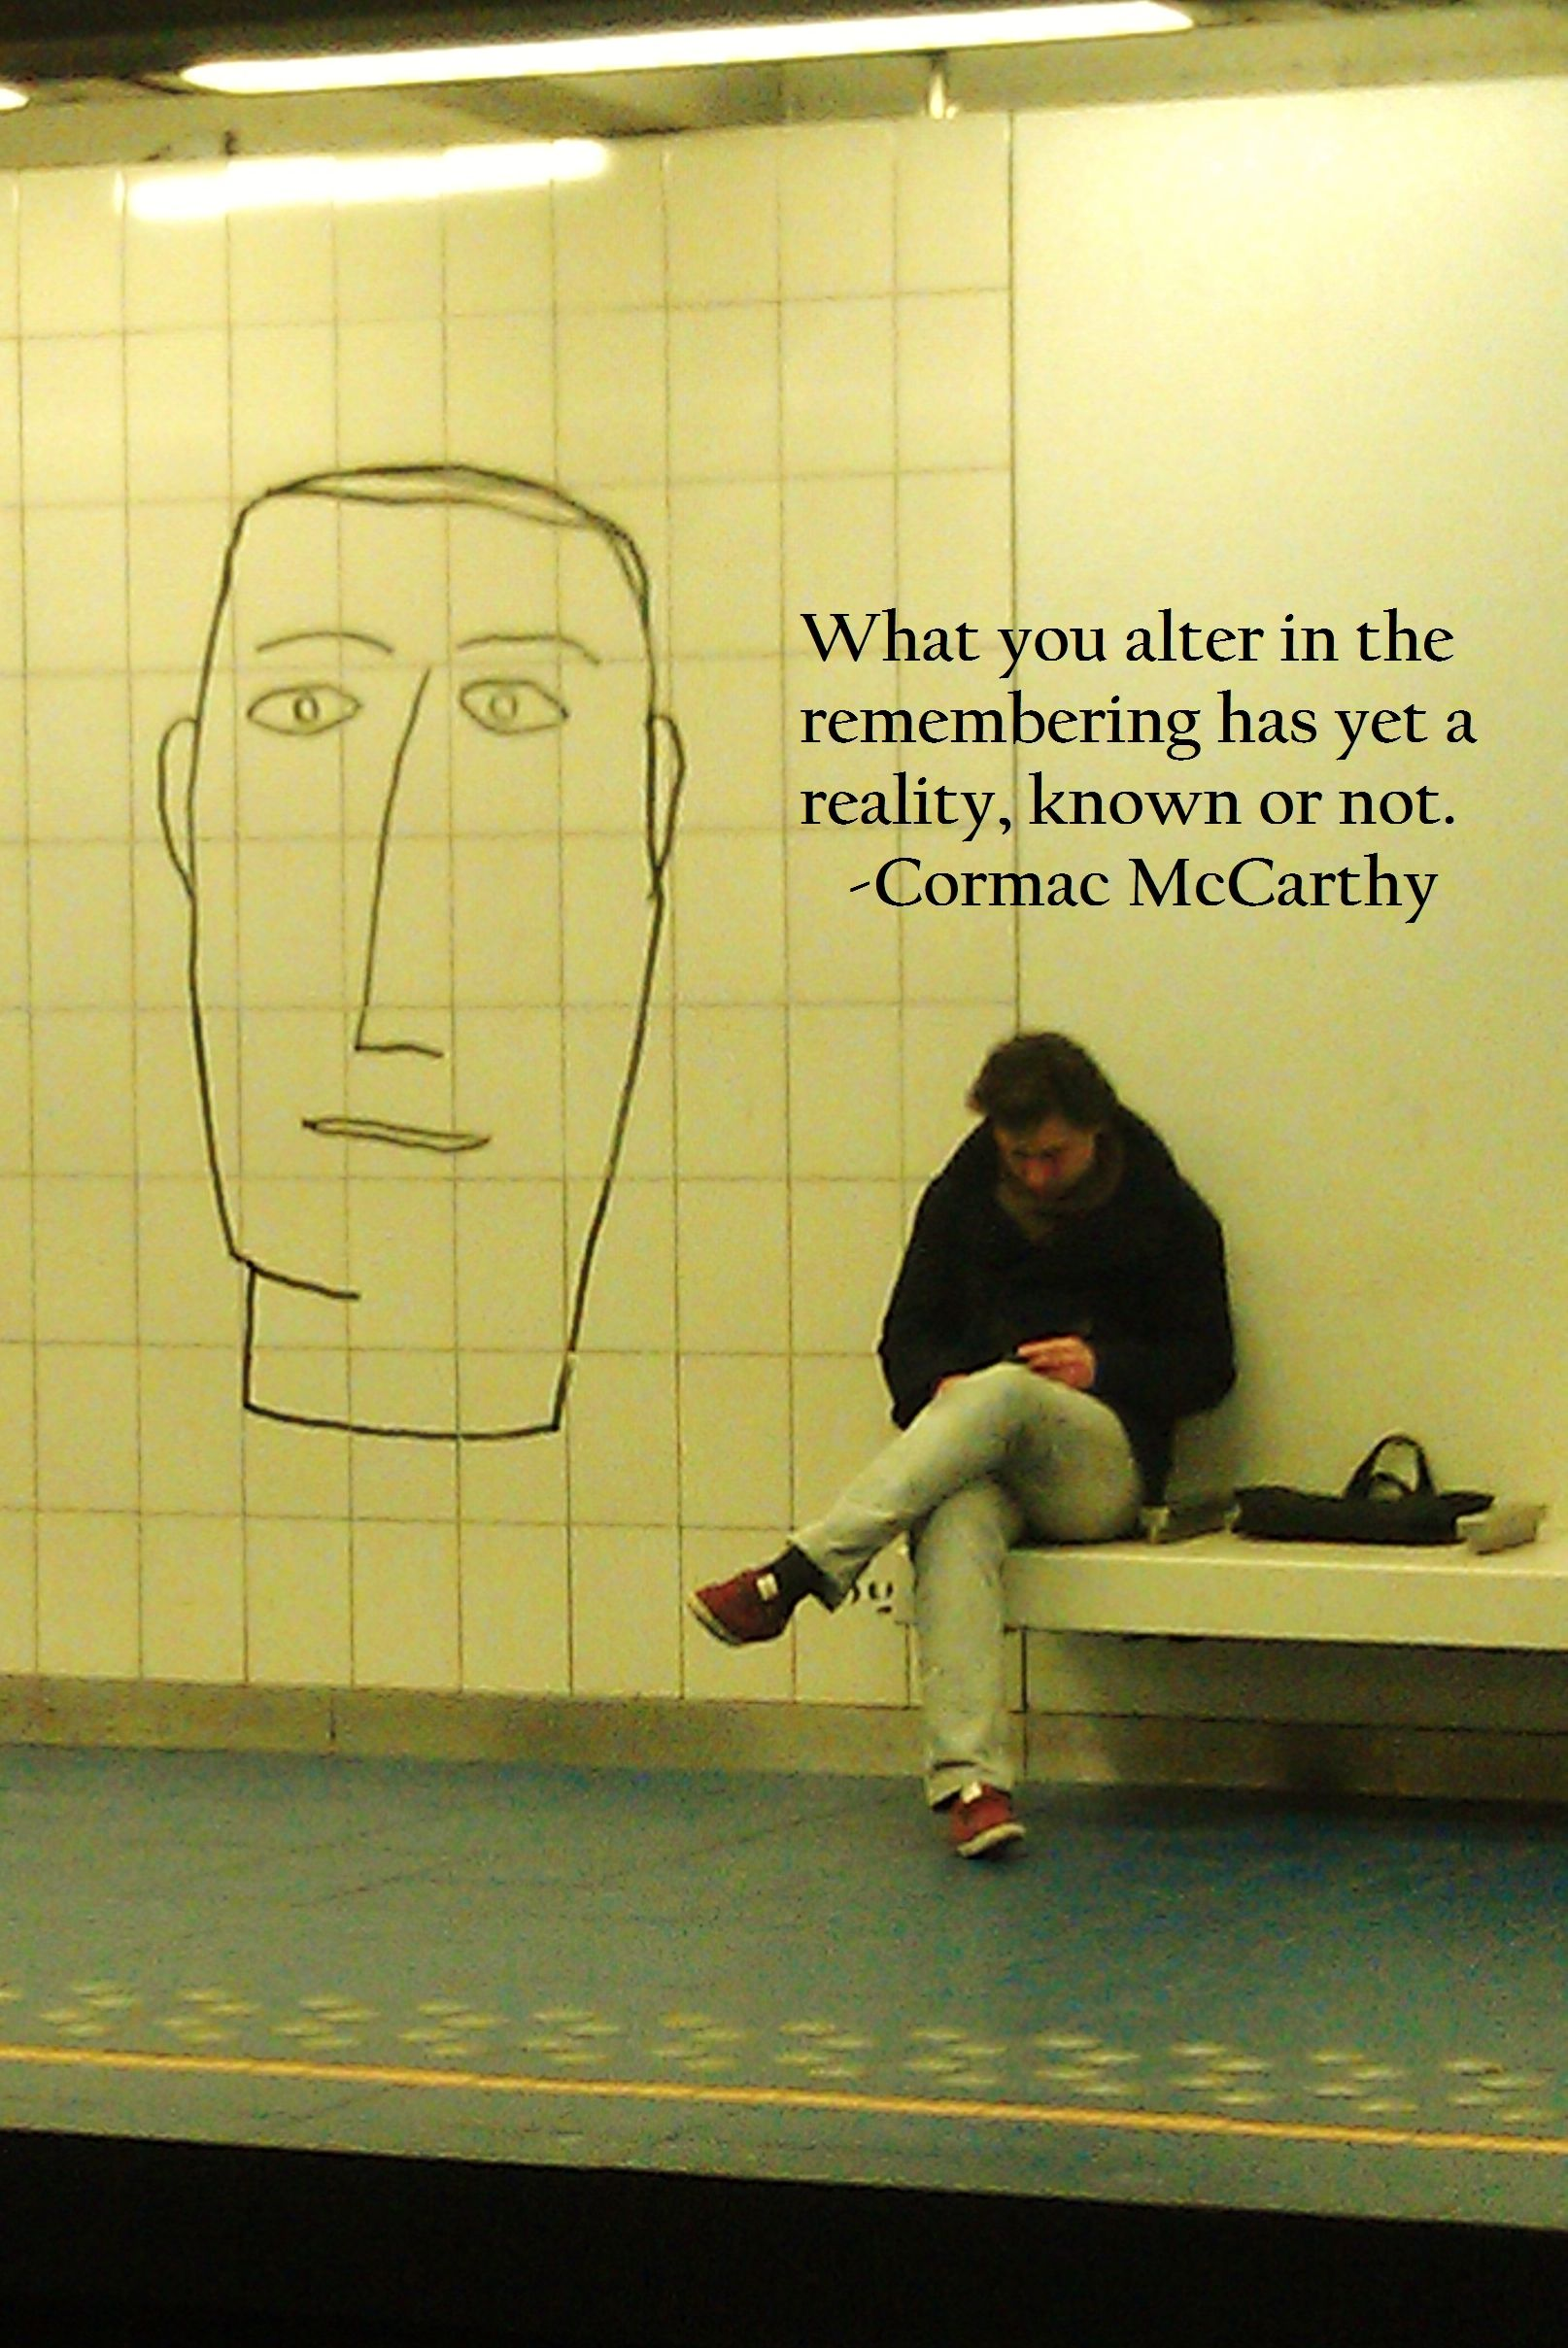 Cormac Mccarthy Quotes A Picture I Took In Brussels Belgium  My Favorite Quote From 'the .